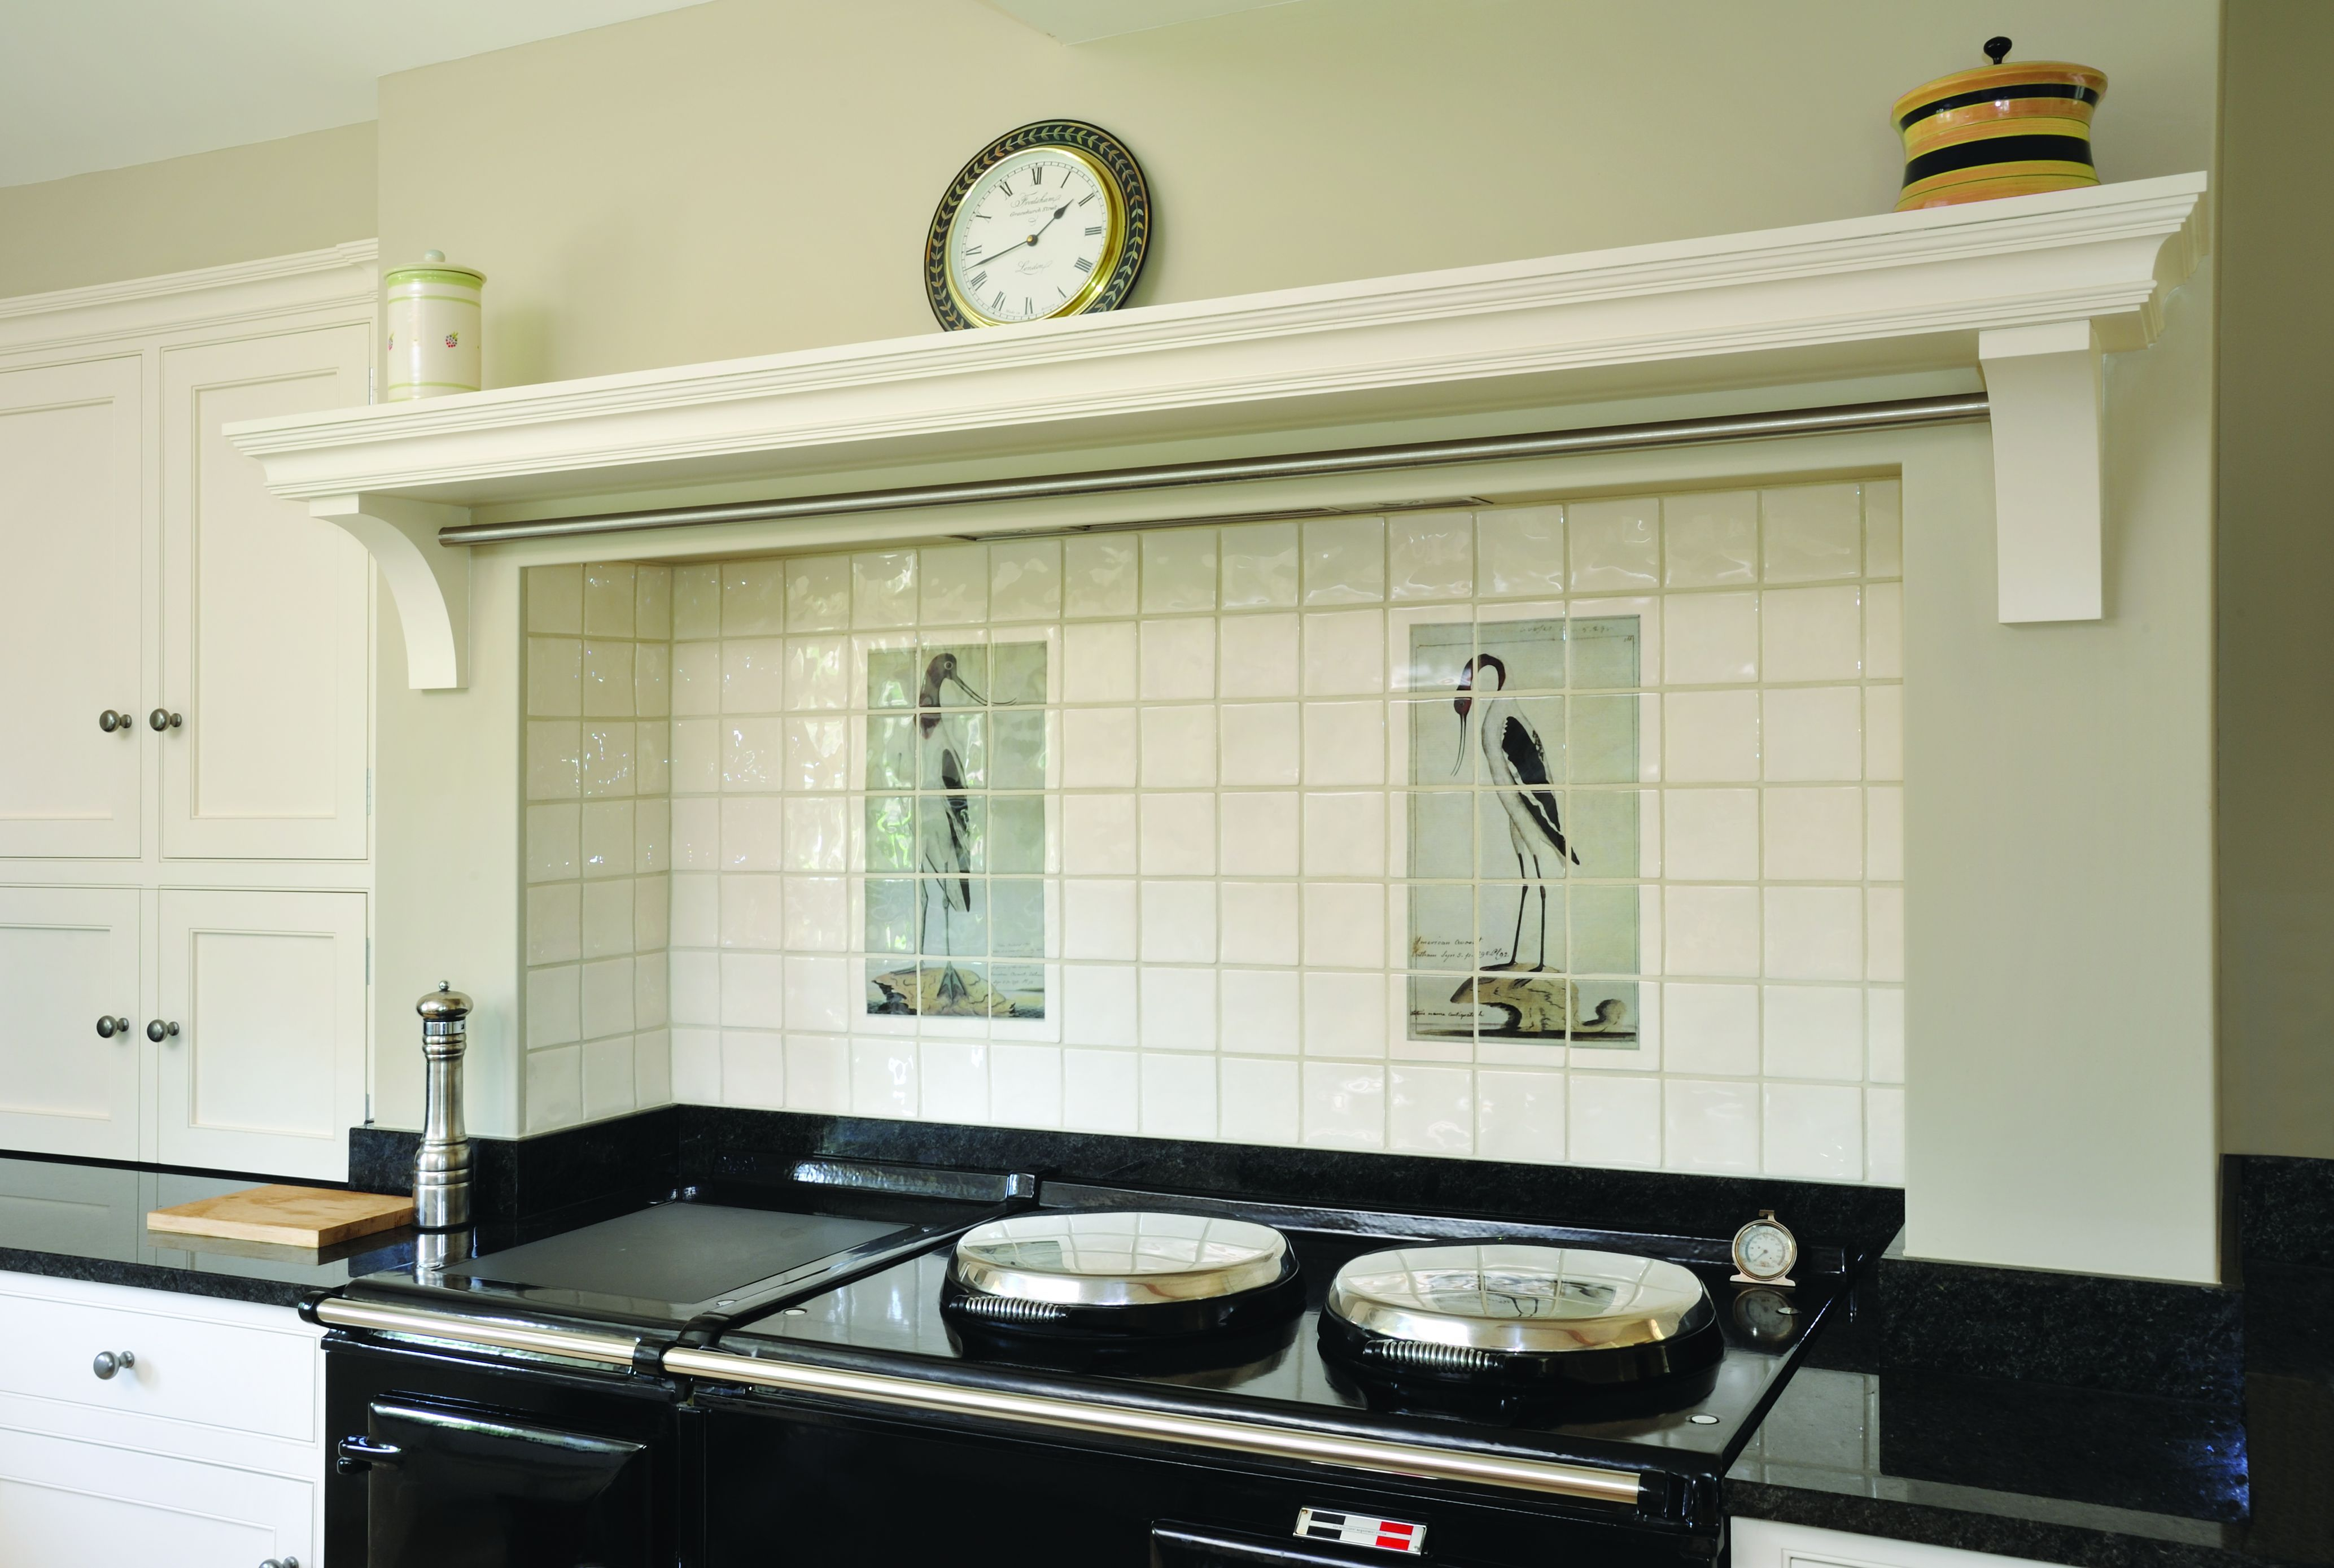 Kitchen splashback tiles ideas kitchen pinterest the Splashback tiles kitchen ideas